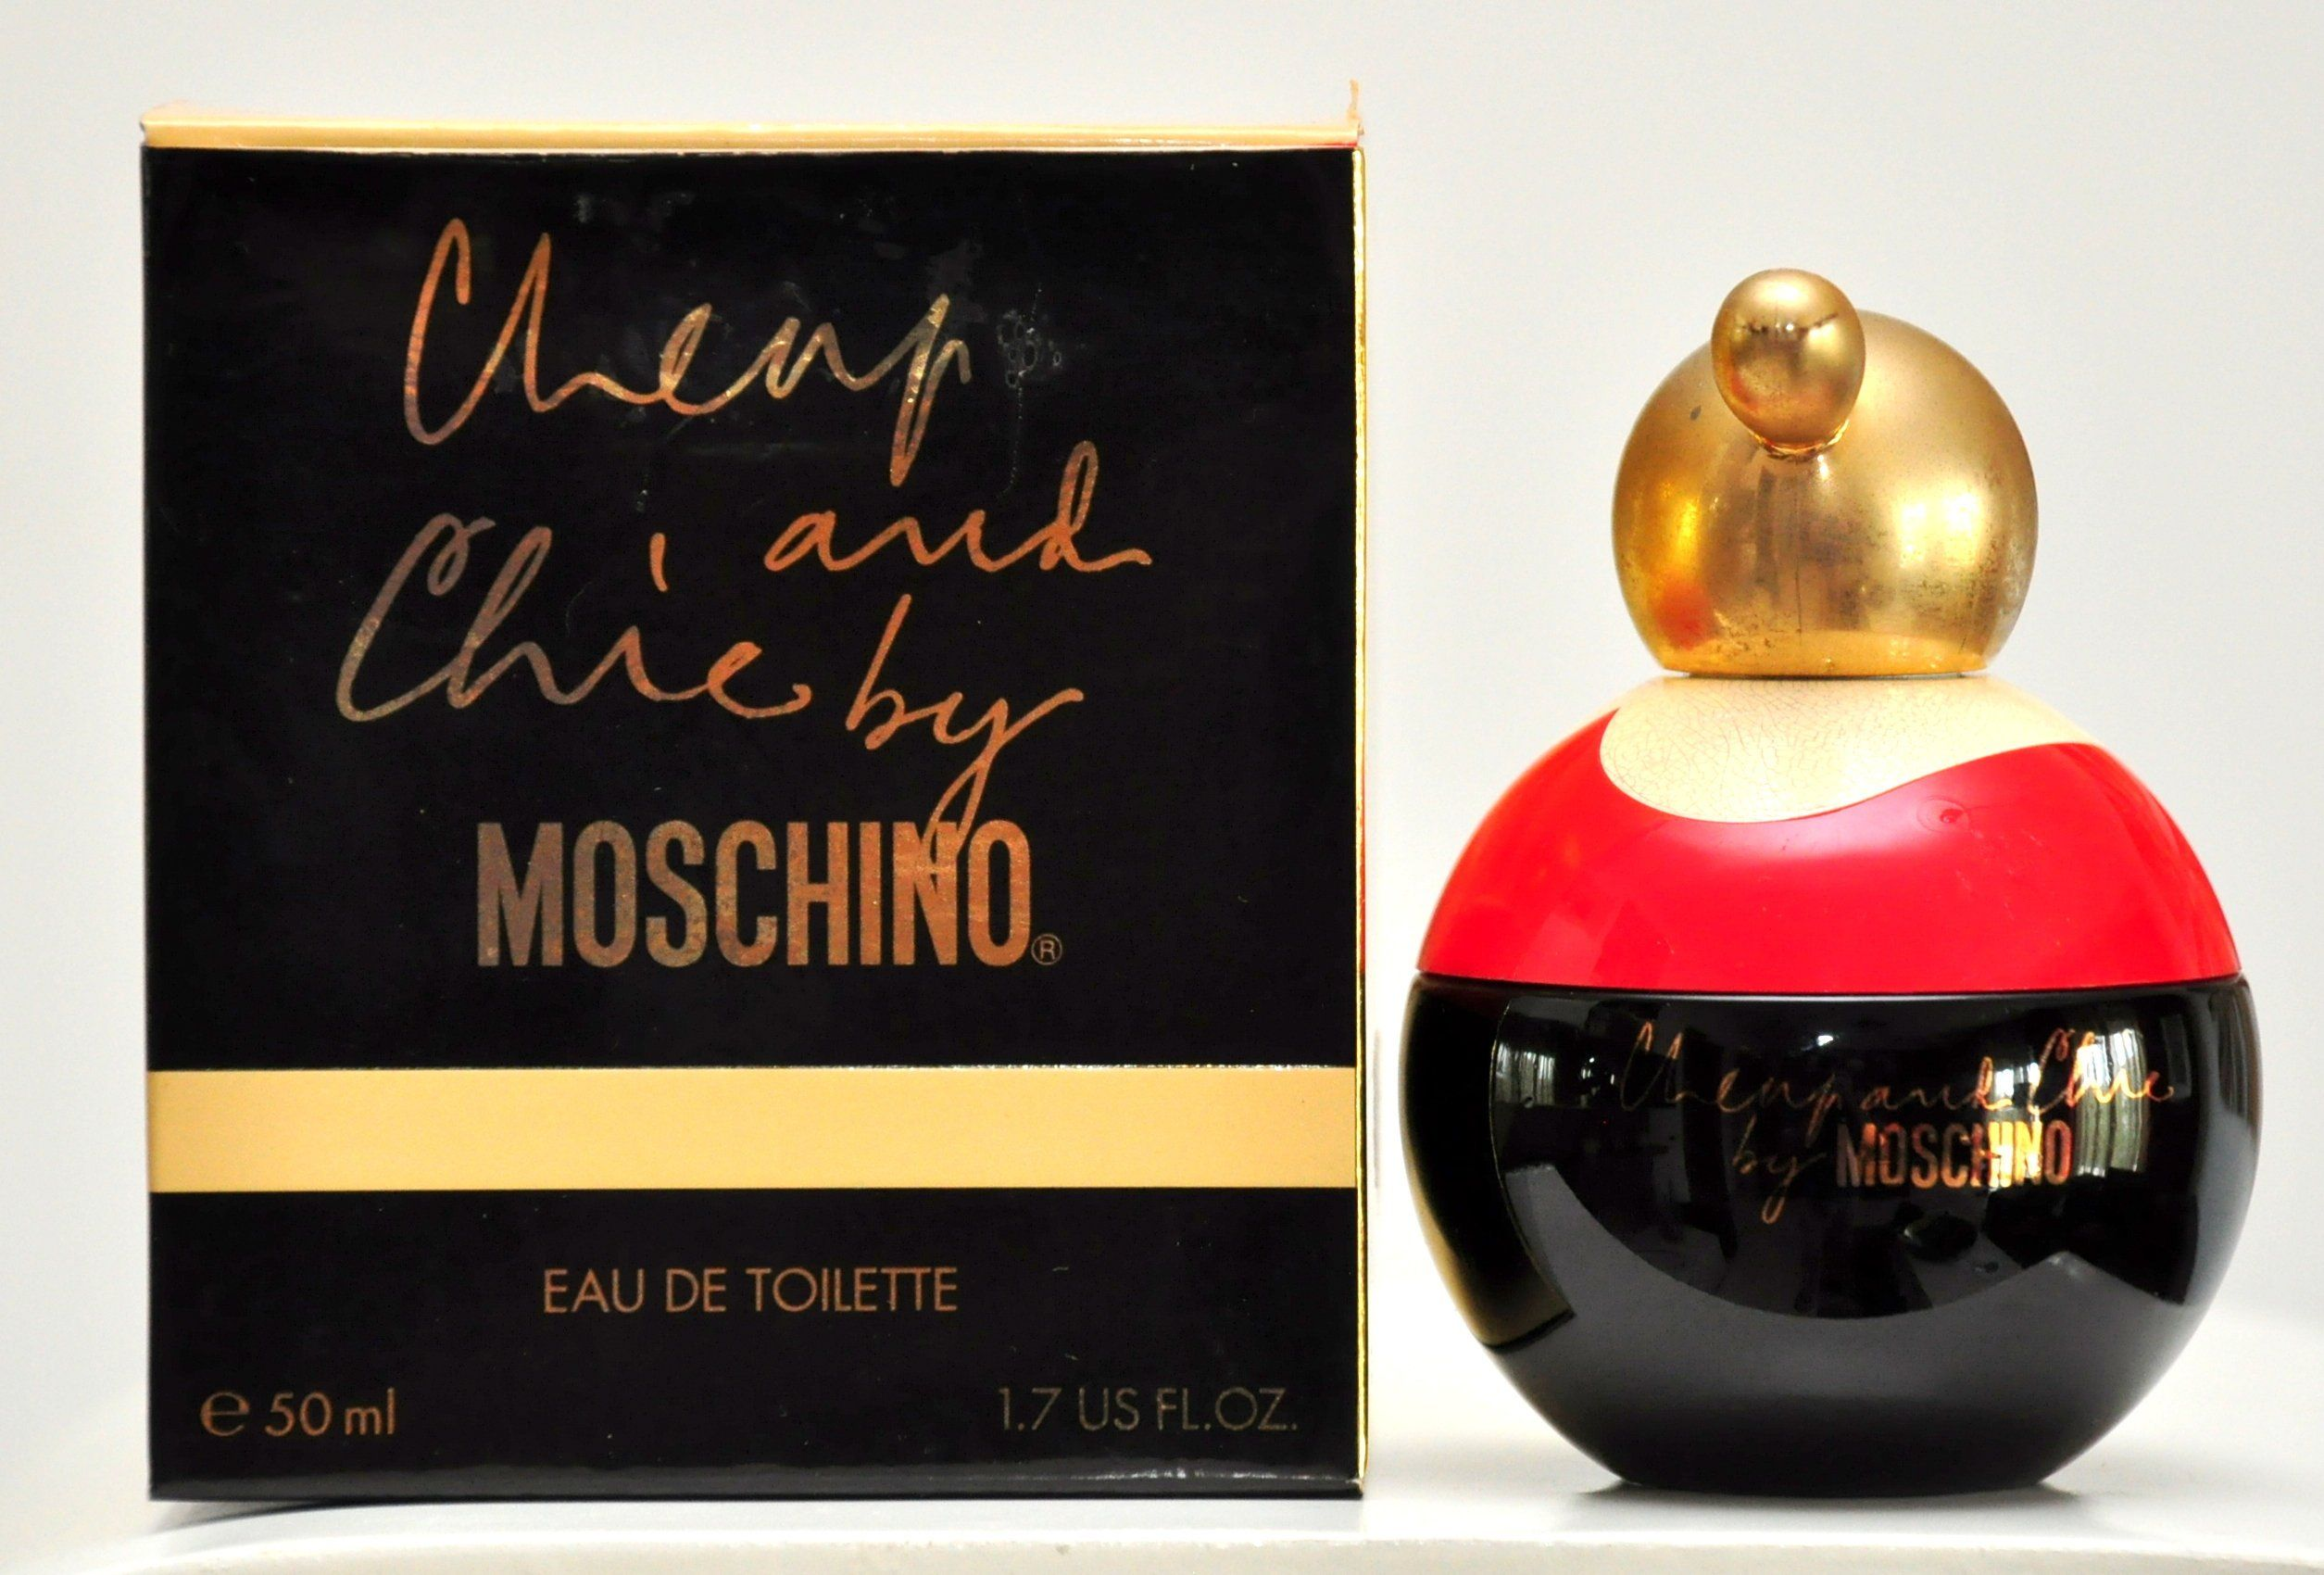 7 Edt Eau 50ml De Cheap 1 Chic Toilette Moschino FlOzNo And Rj4AL5